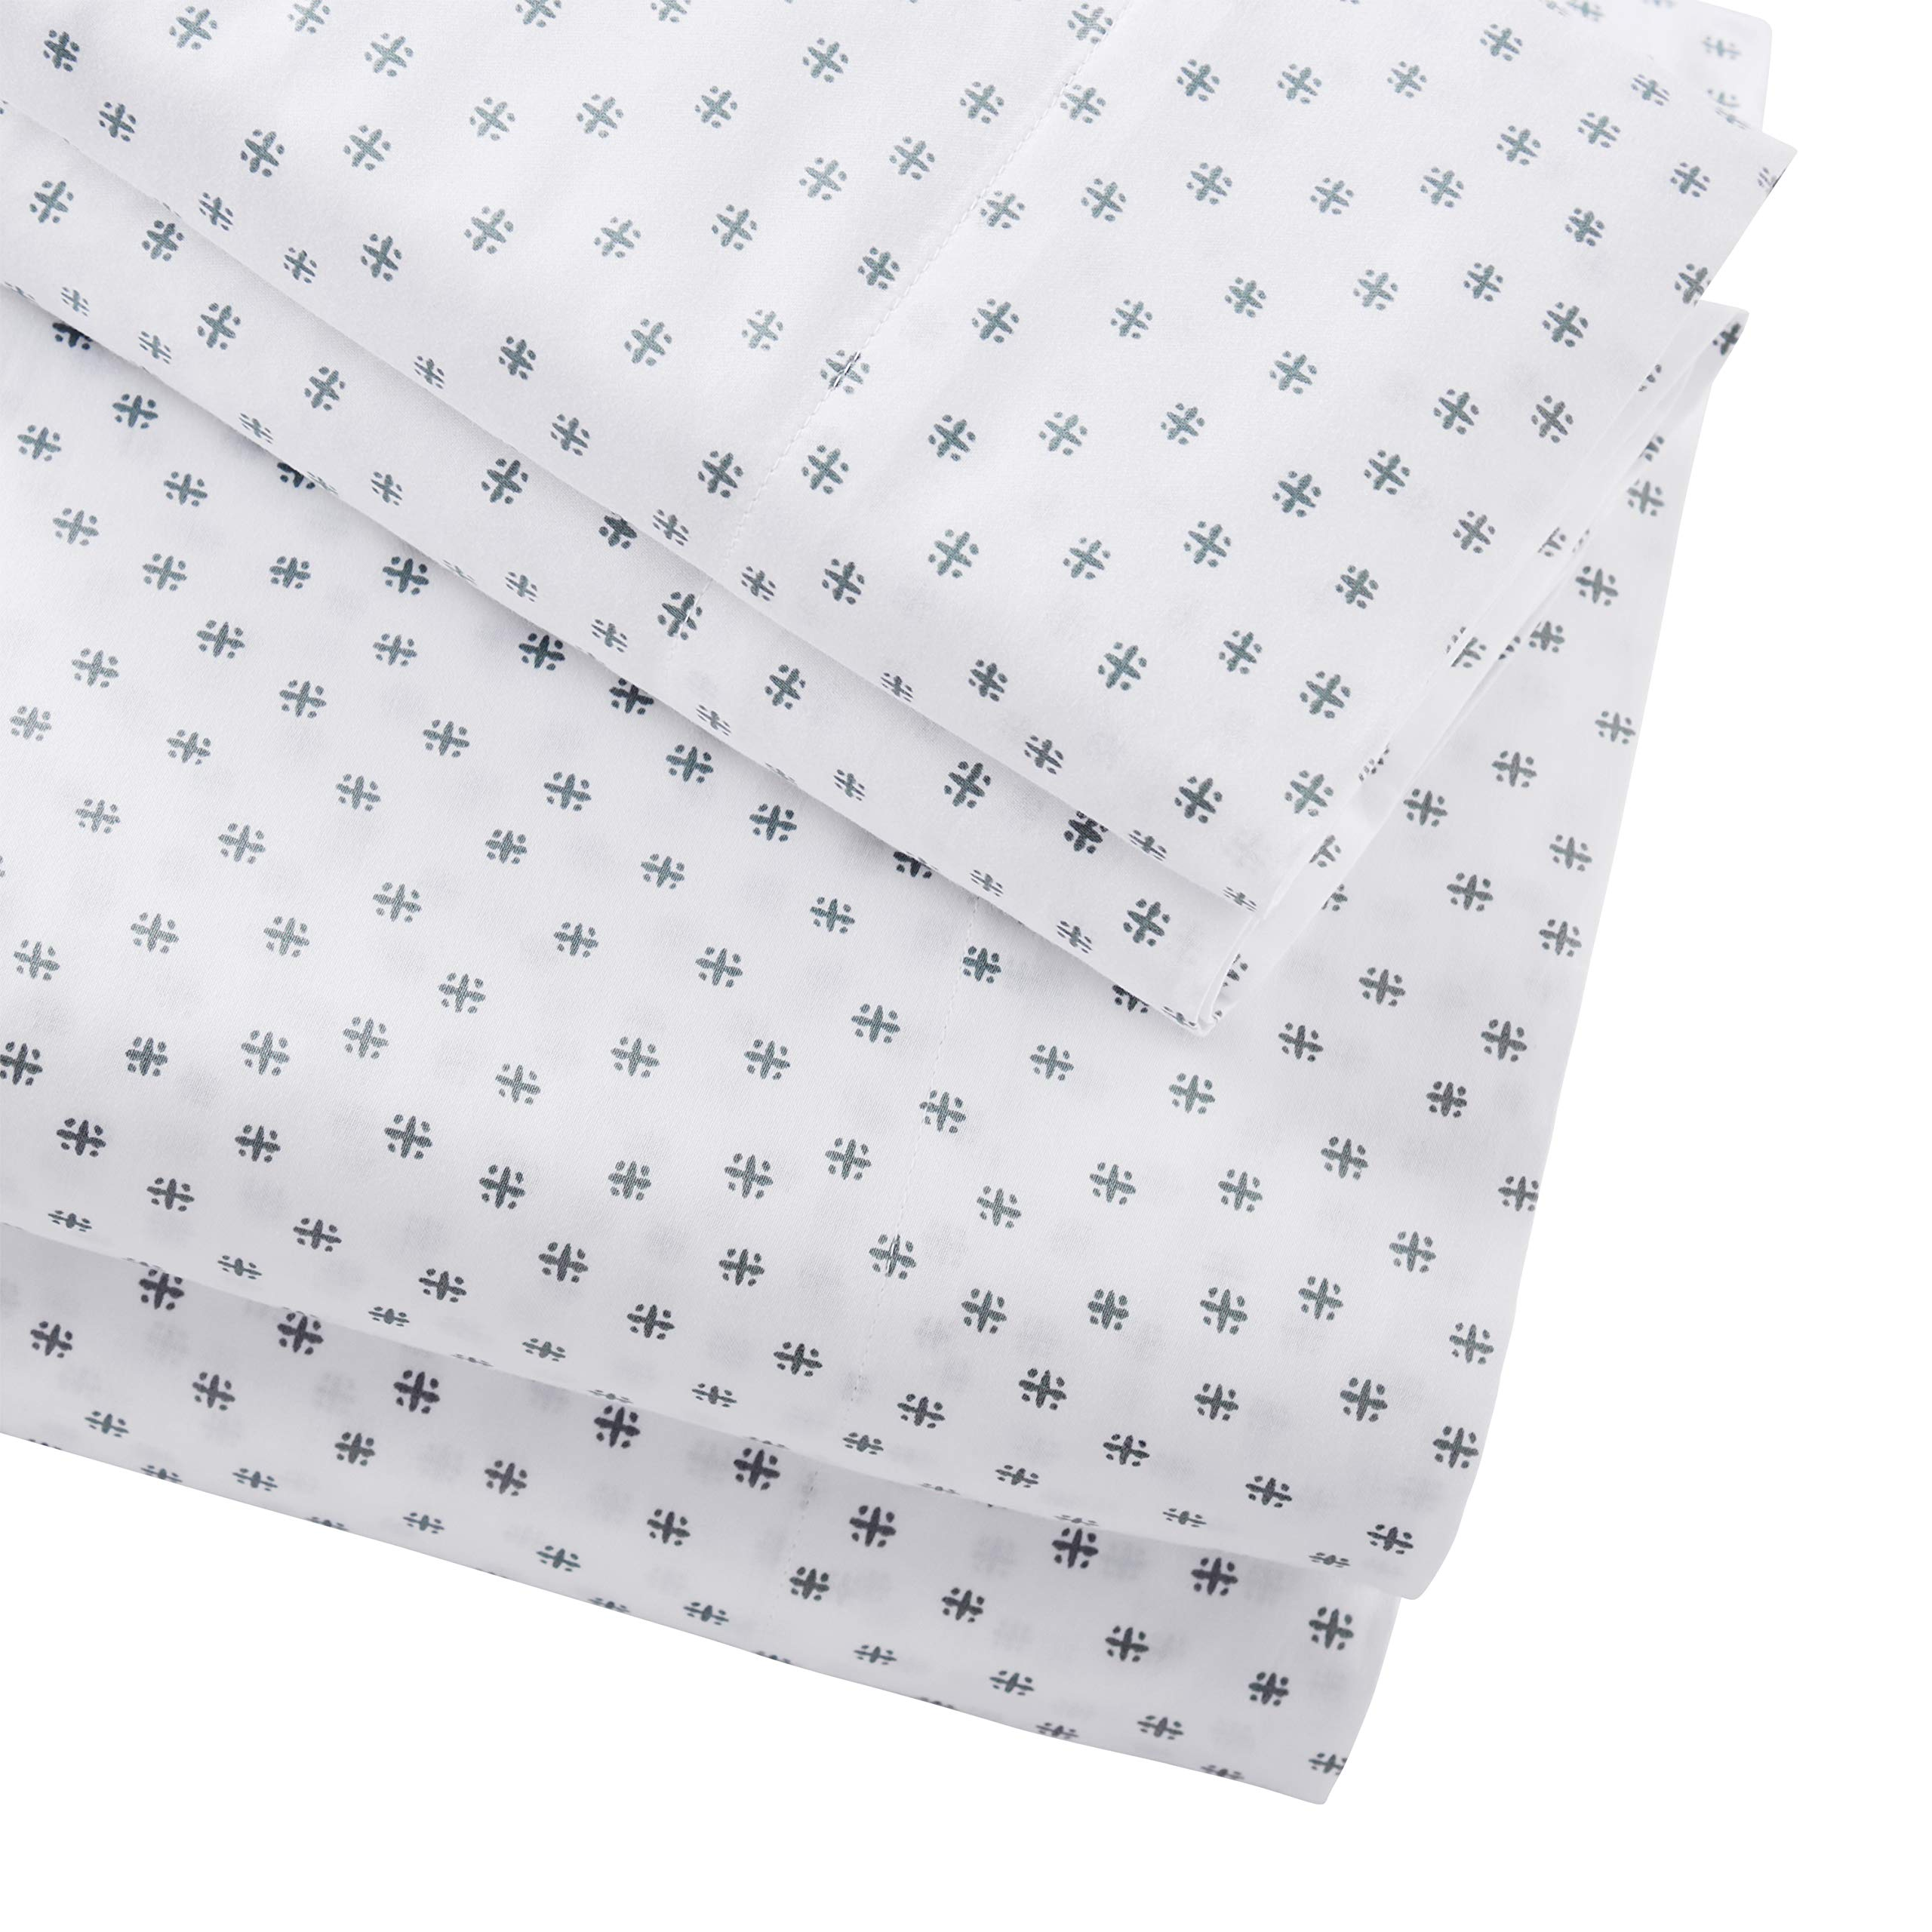 Stone & Beam Starburst 100% Cotton Sateen Sheet Set, Queen, Oasis by Stone & Beam (Image #5)